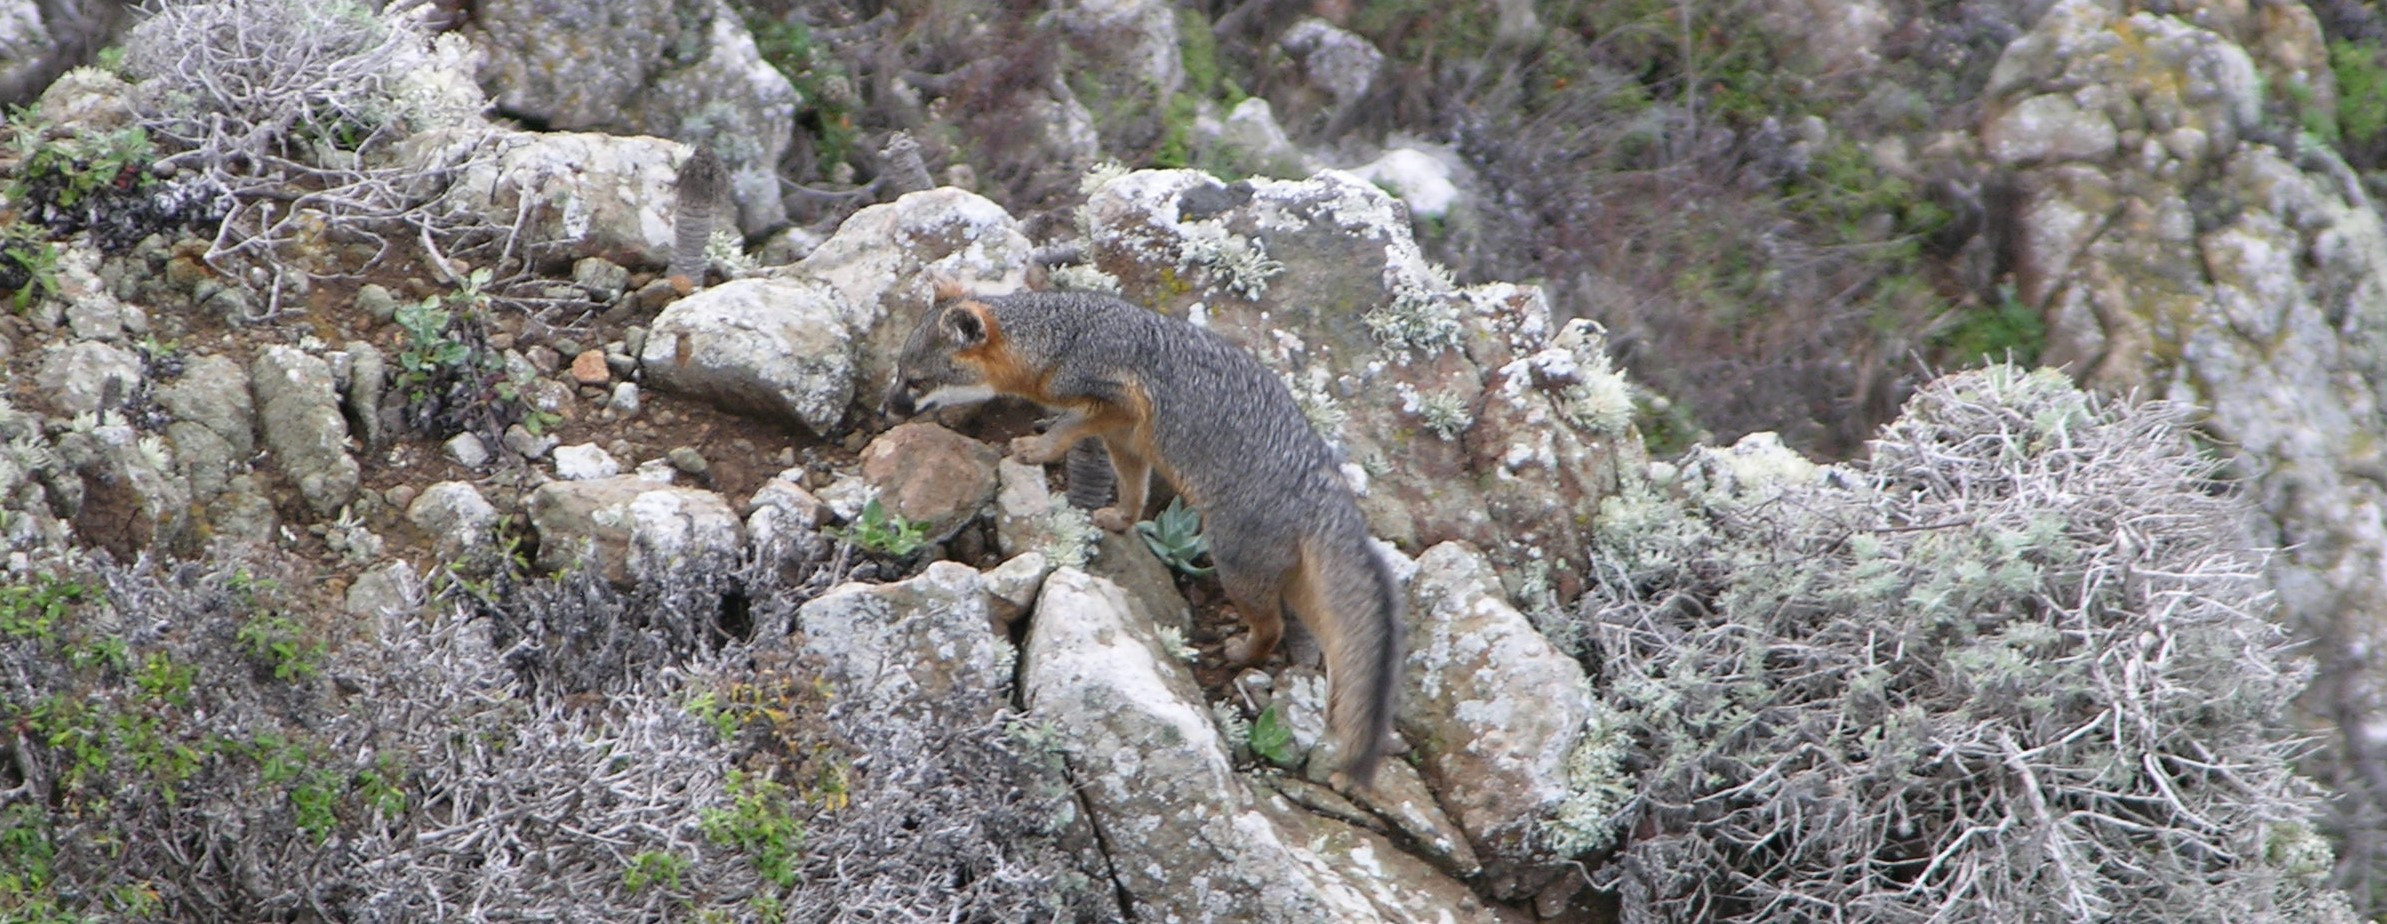 Santa Cruz Dec 5-7 2014 Island Fox